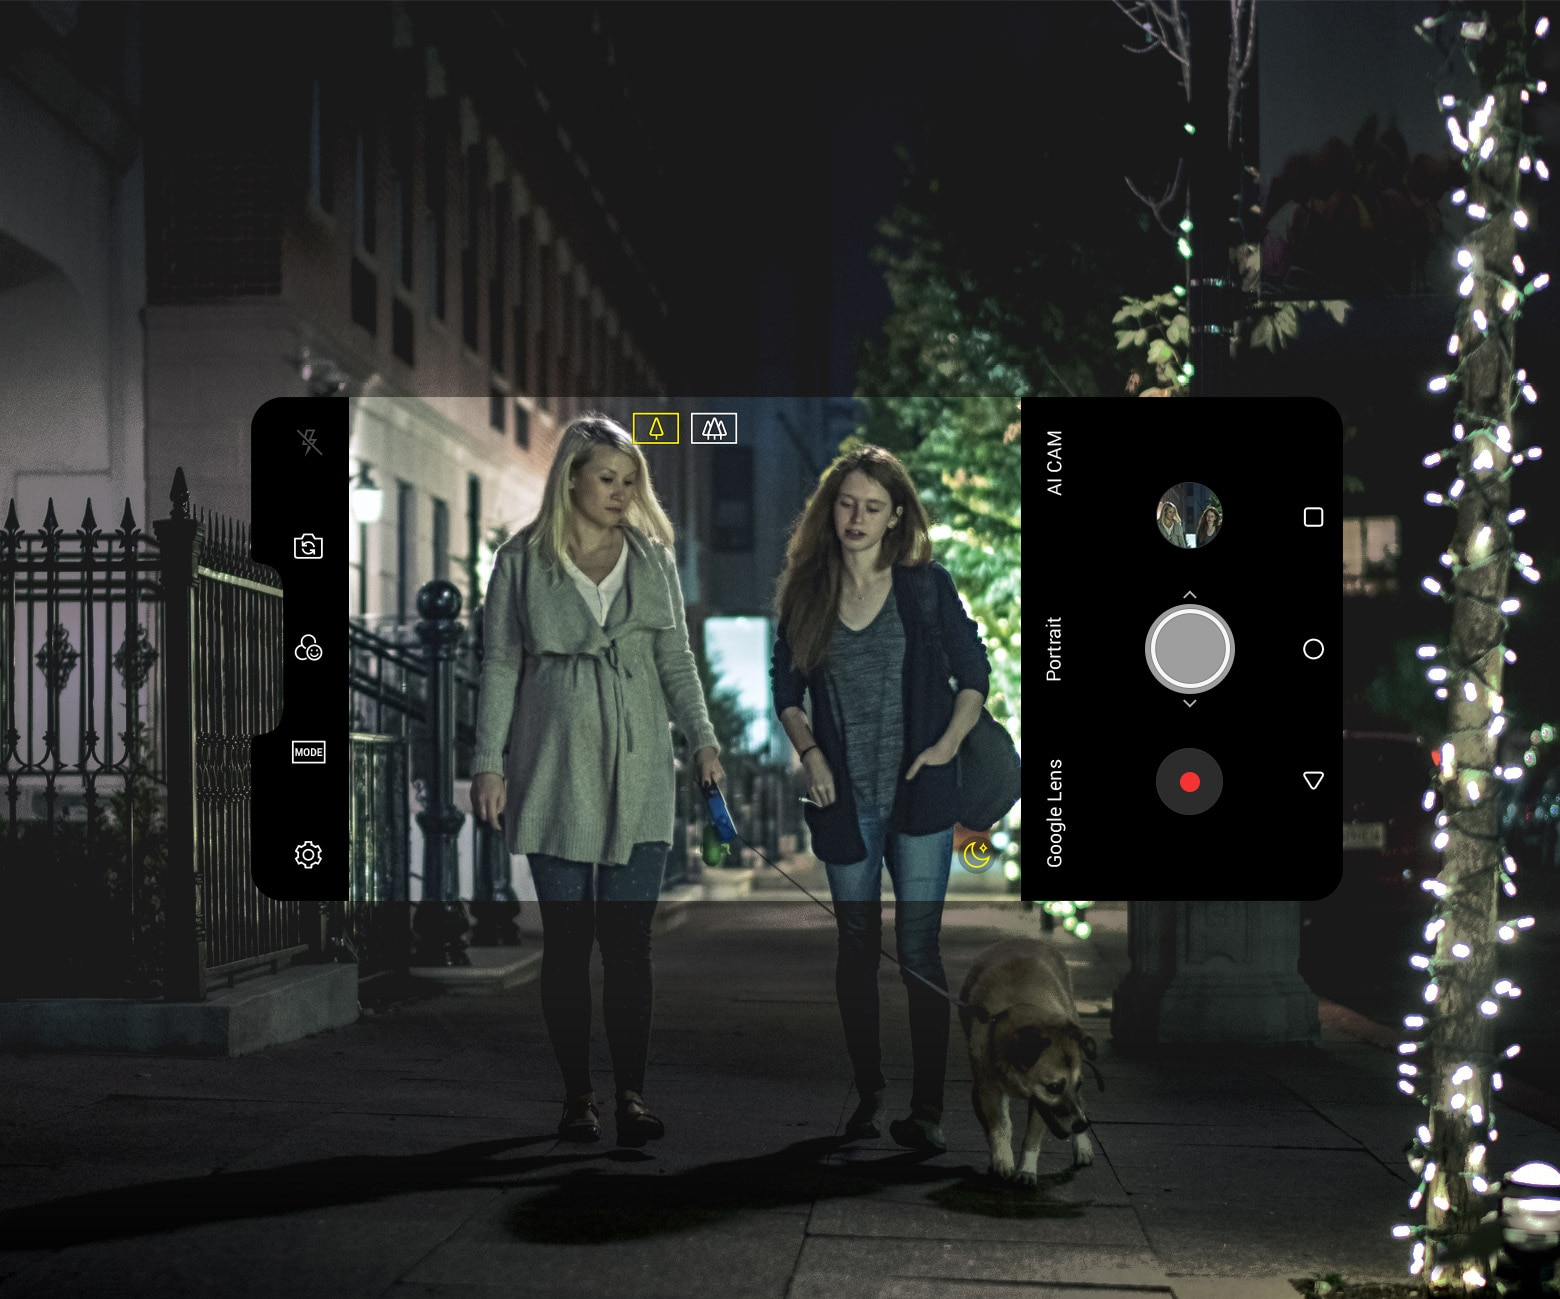 Capturing photo of two women walking a dog in the dark.